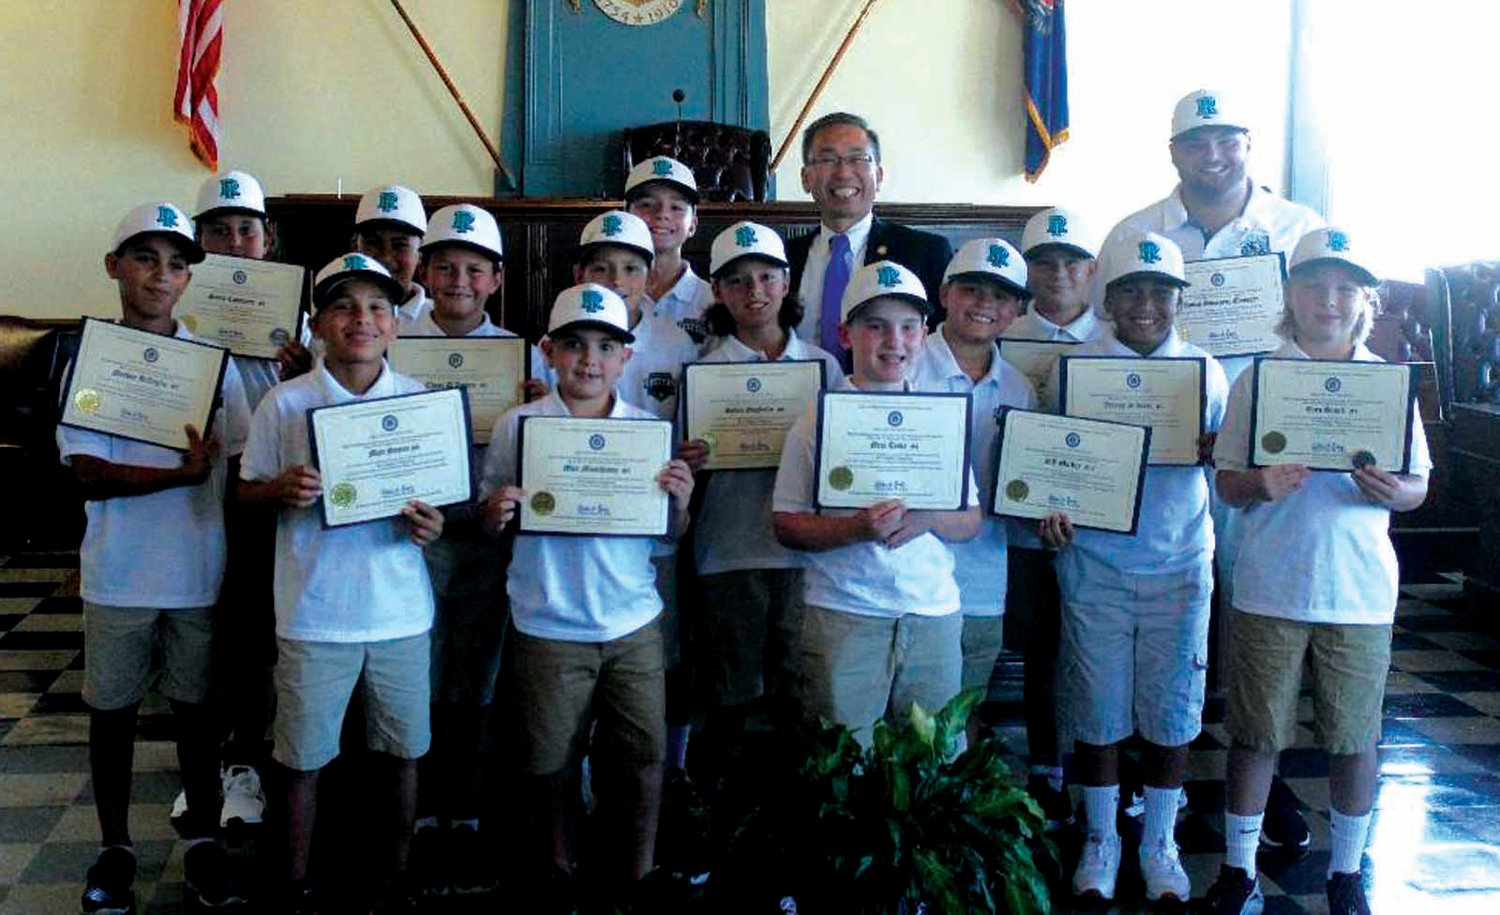 TEAM FIRST: The CWLL 10's with Mayor Allan Fung.